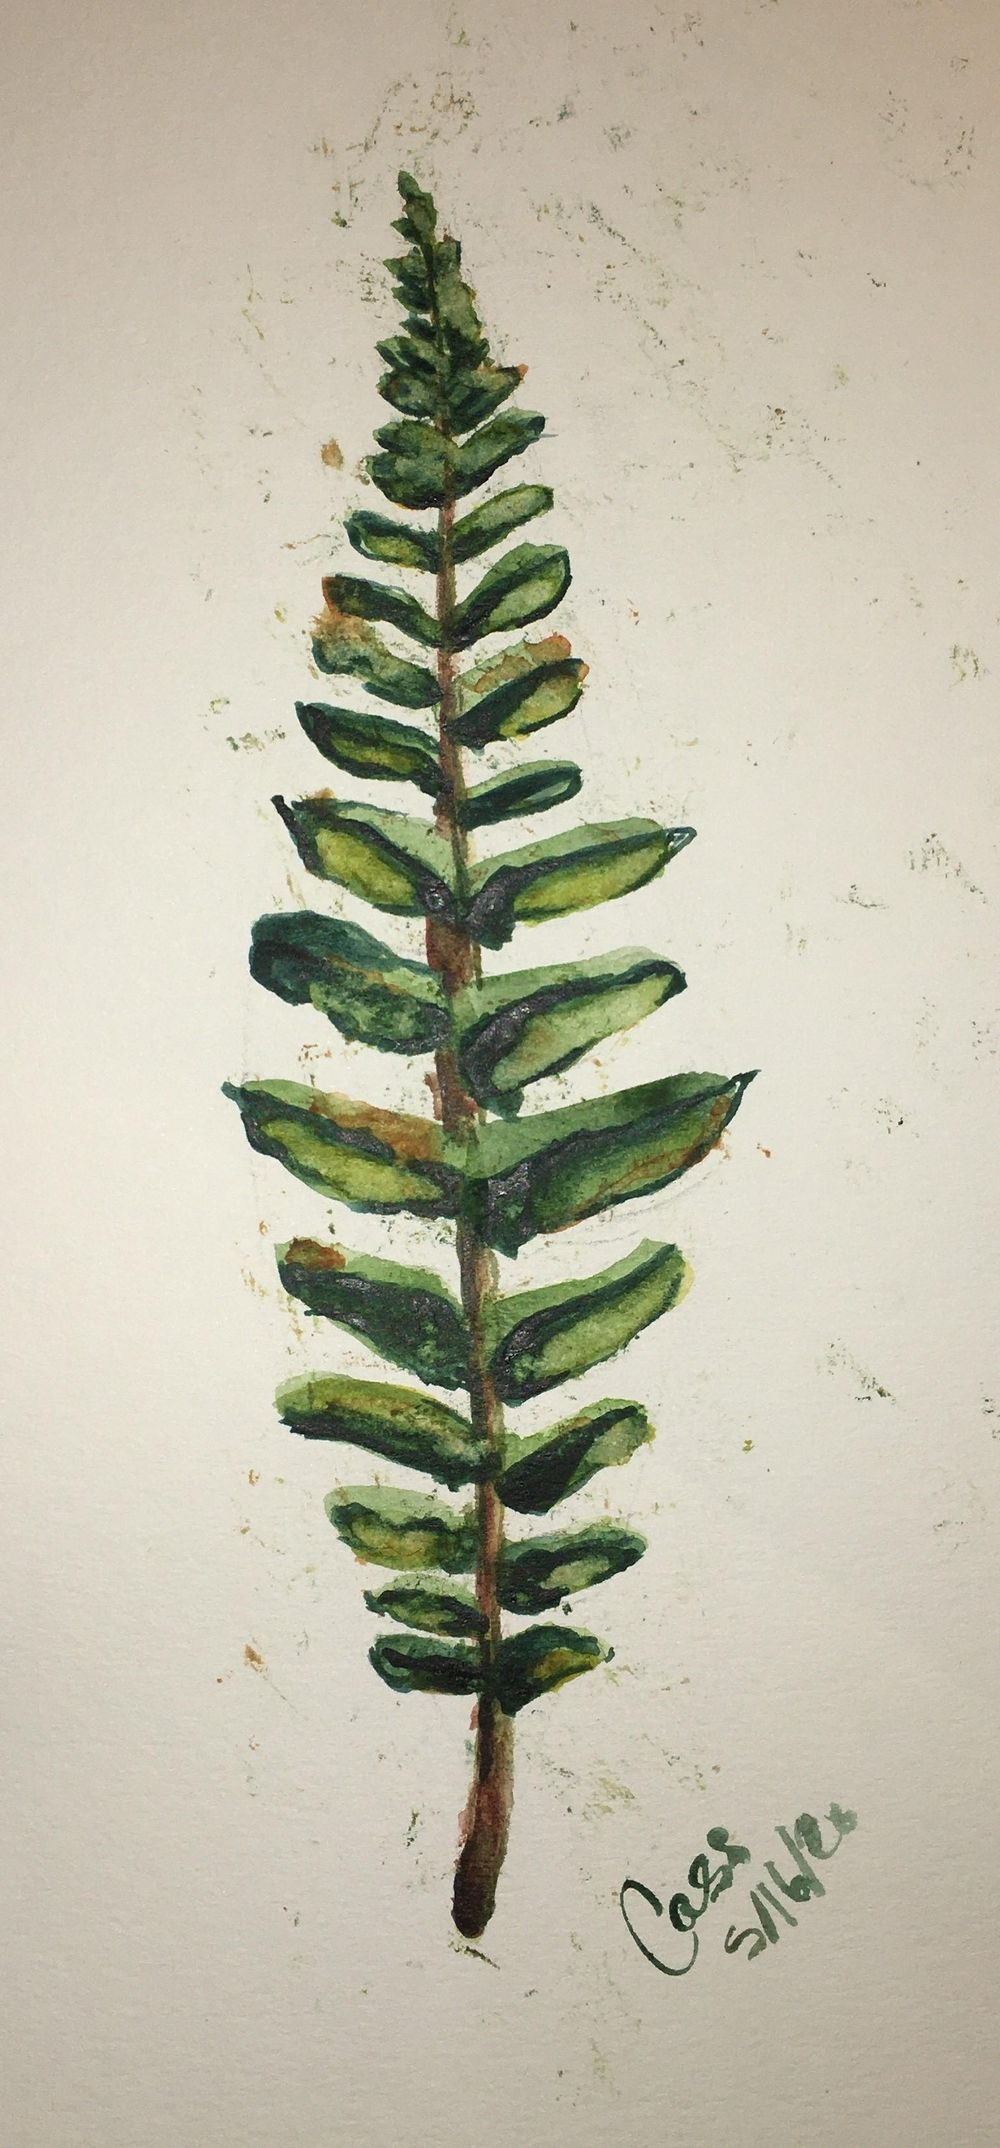 watercolor fern - image 1 - student project